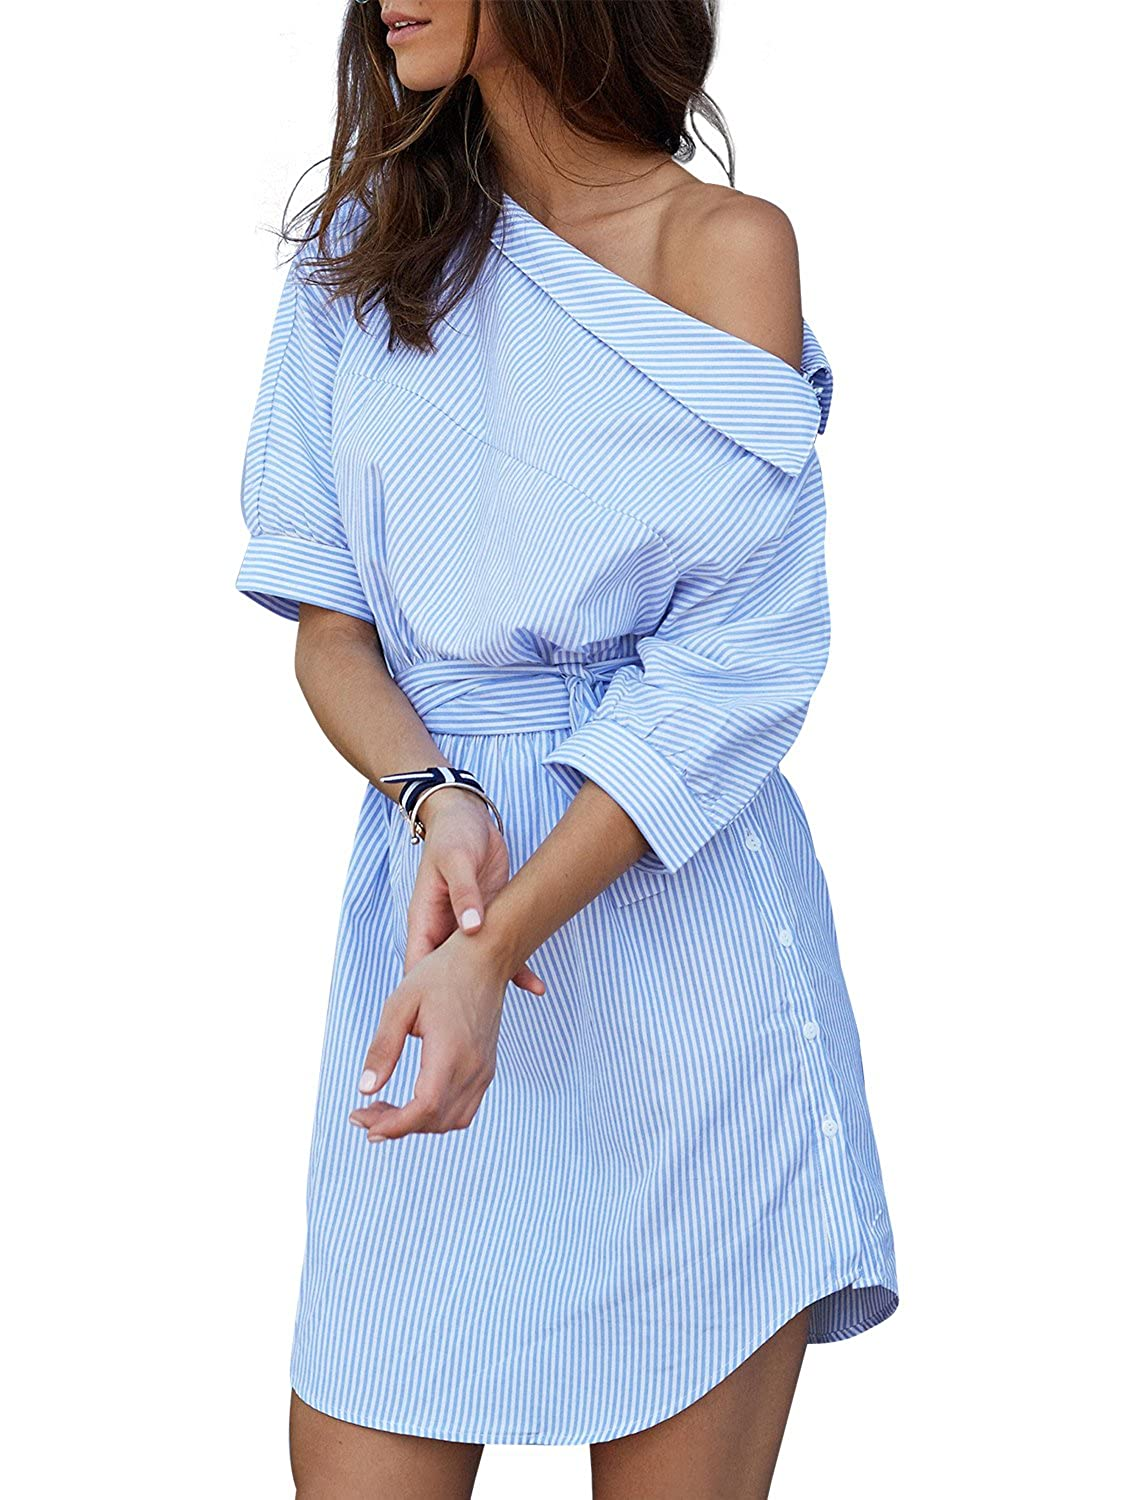 bc94eb8fe6 Simplee Apparel Women's Half Sleeve One Shoulder Side Split Striped Shirt  Dress at Amazon Women's Clothing store: